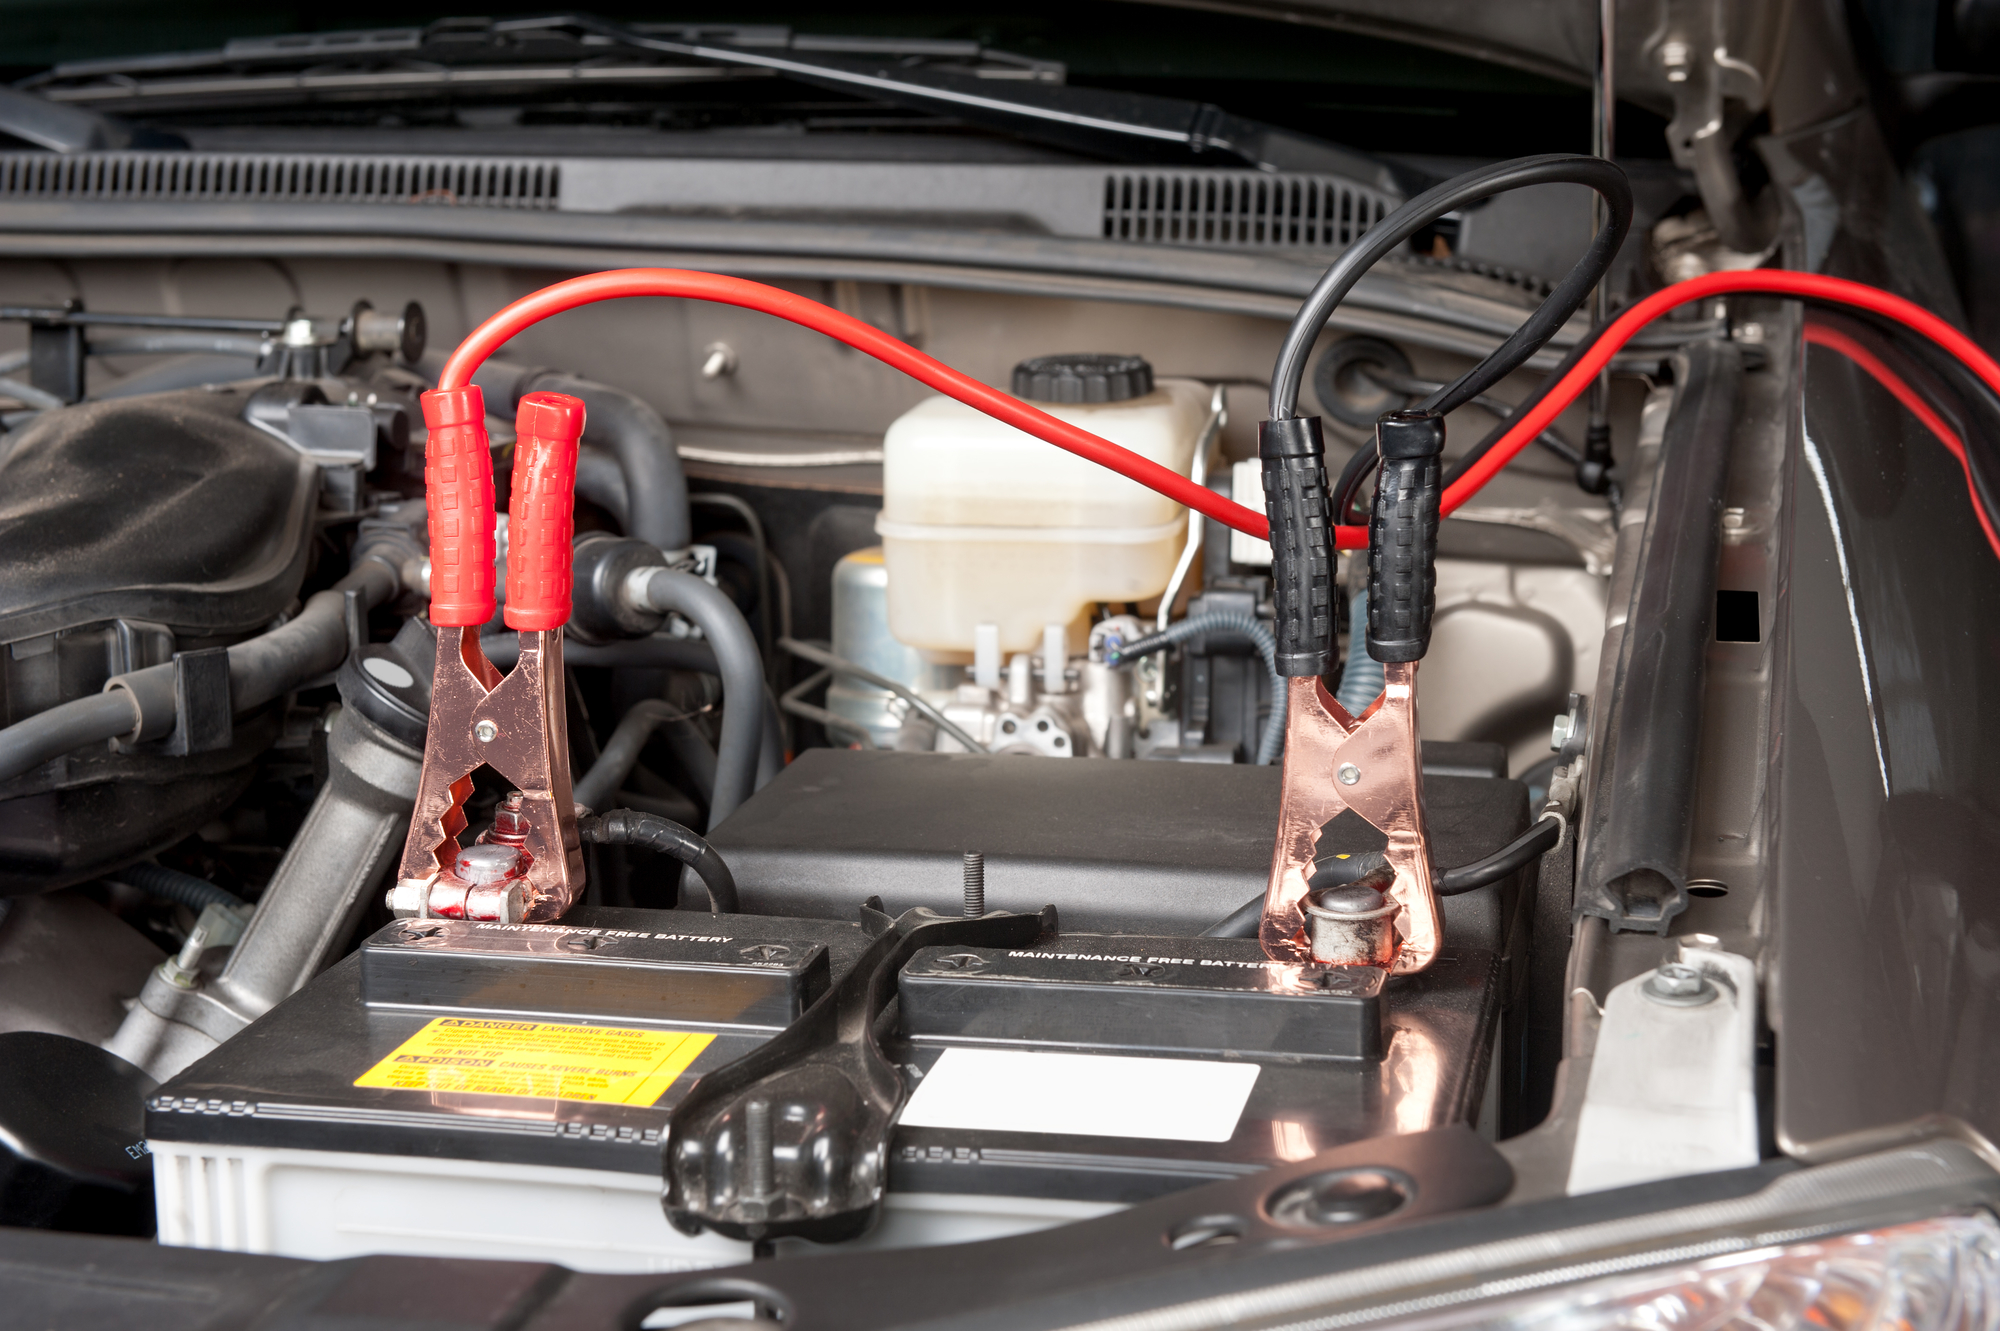 How to Hook Up and Use Jumper Cables